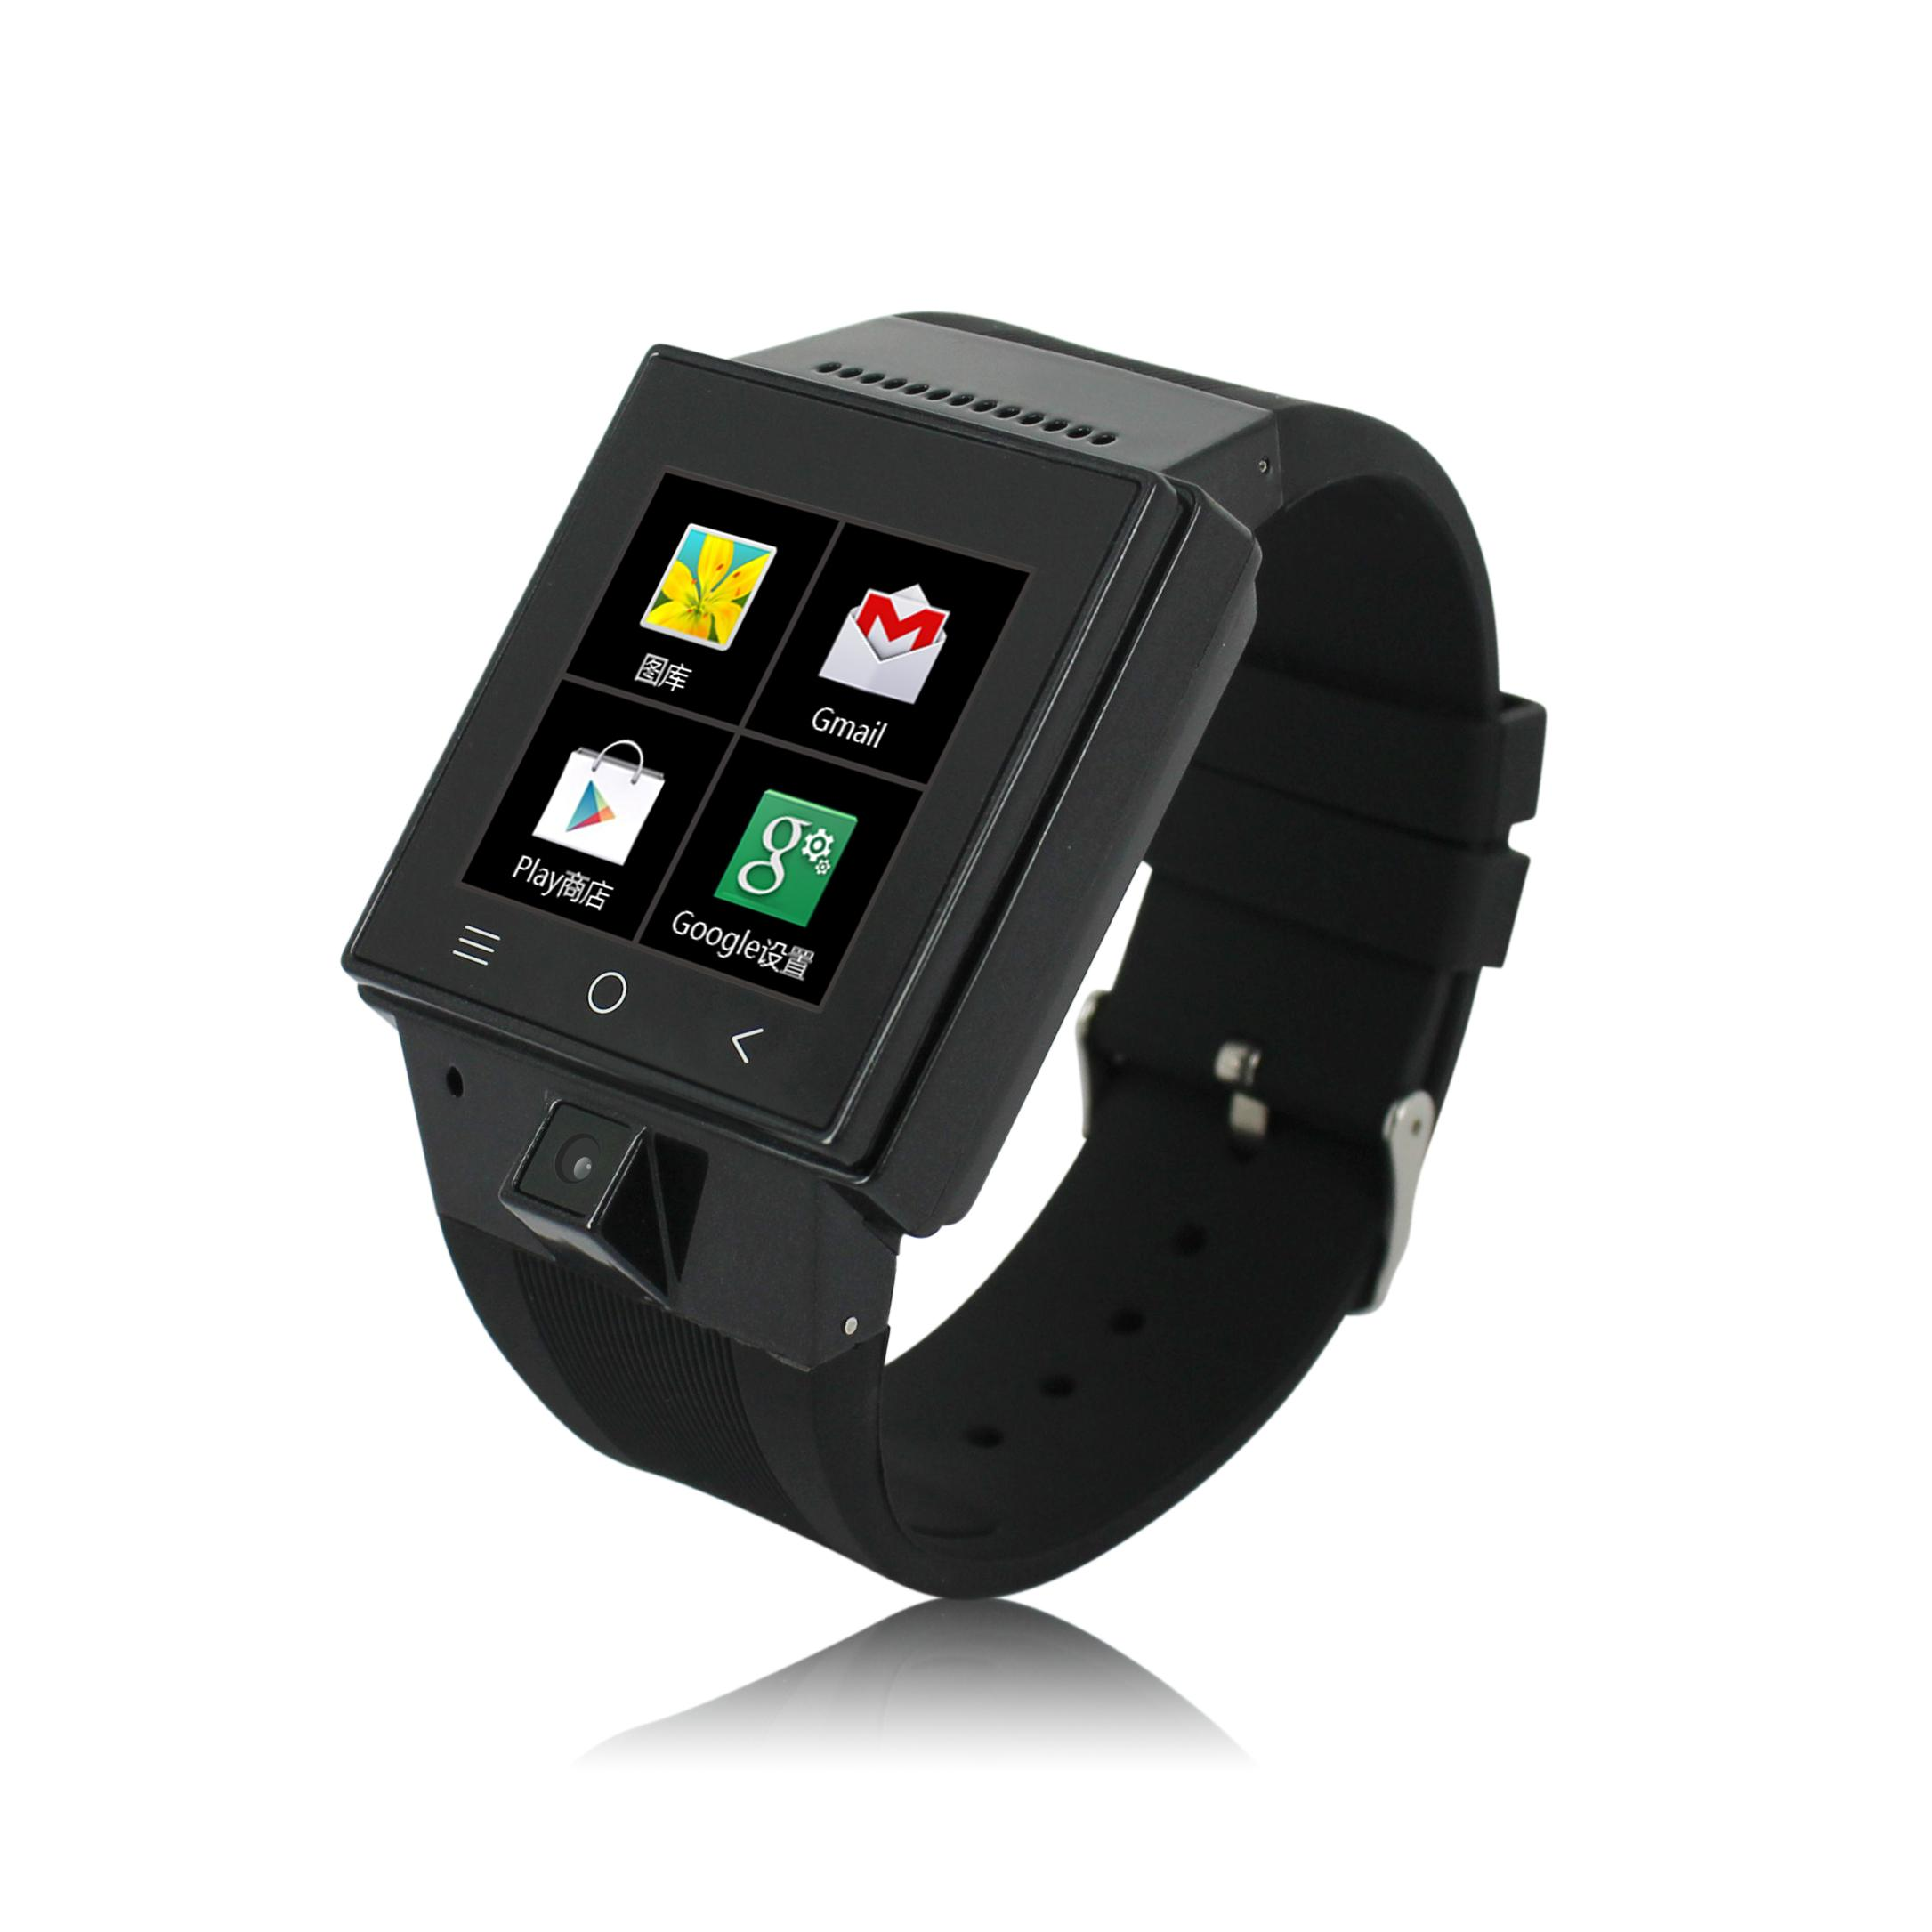 five smartwatch smartwatches the smart learn buddy displays watches largest vea with top